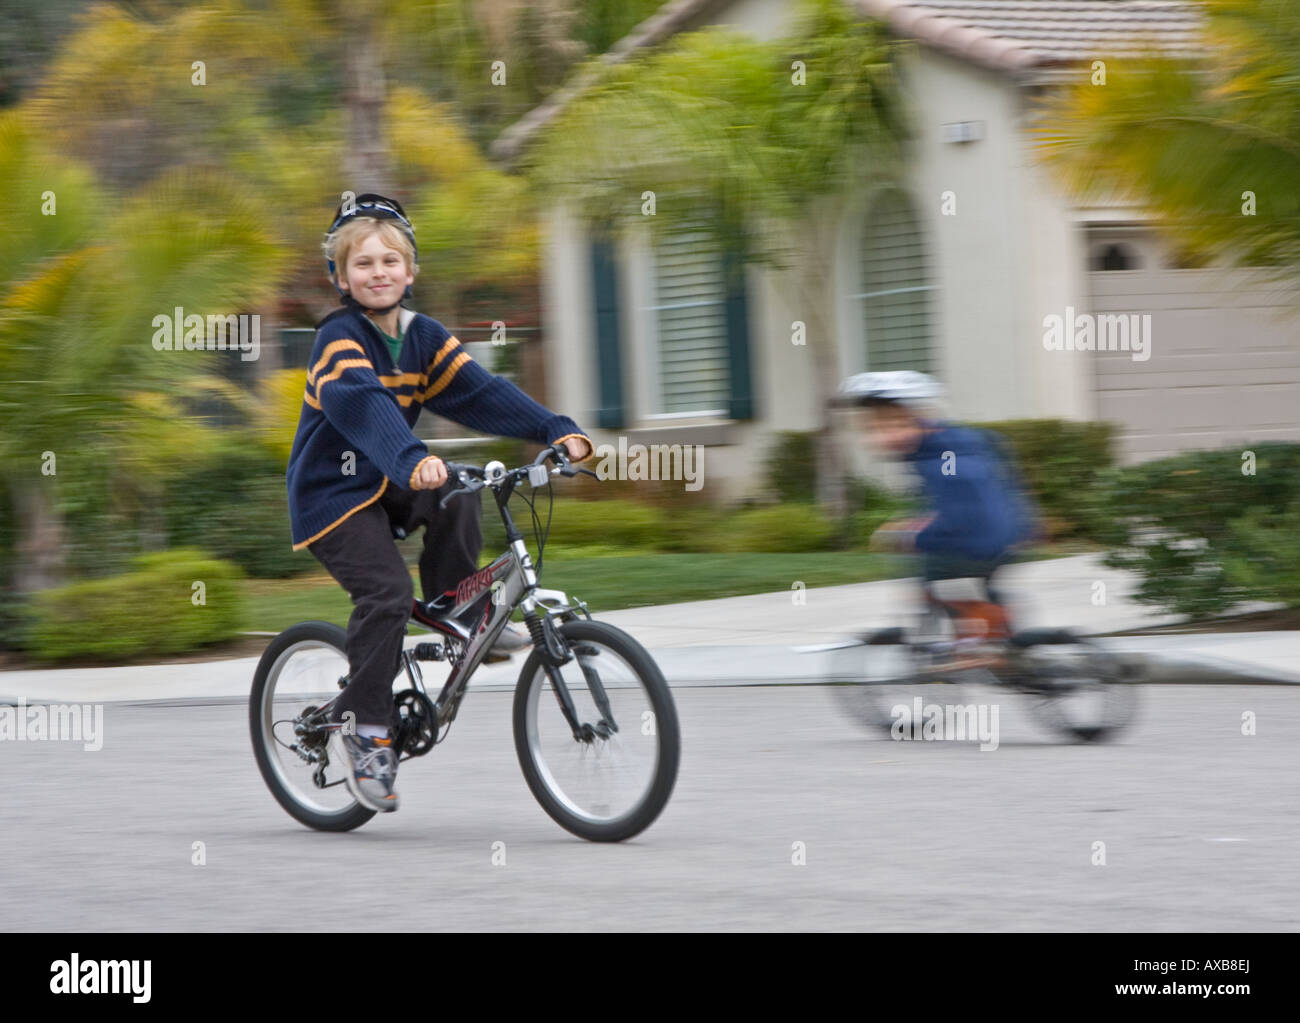 young buy riding a bike blurred shot - Stock Image